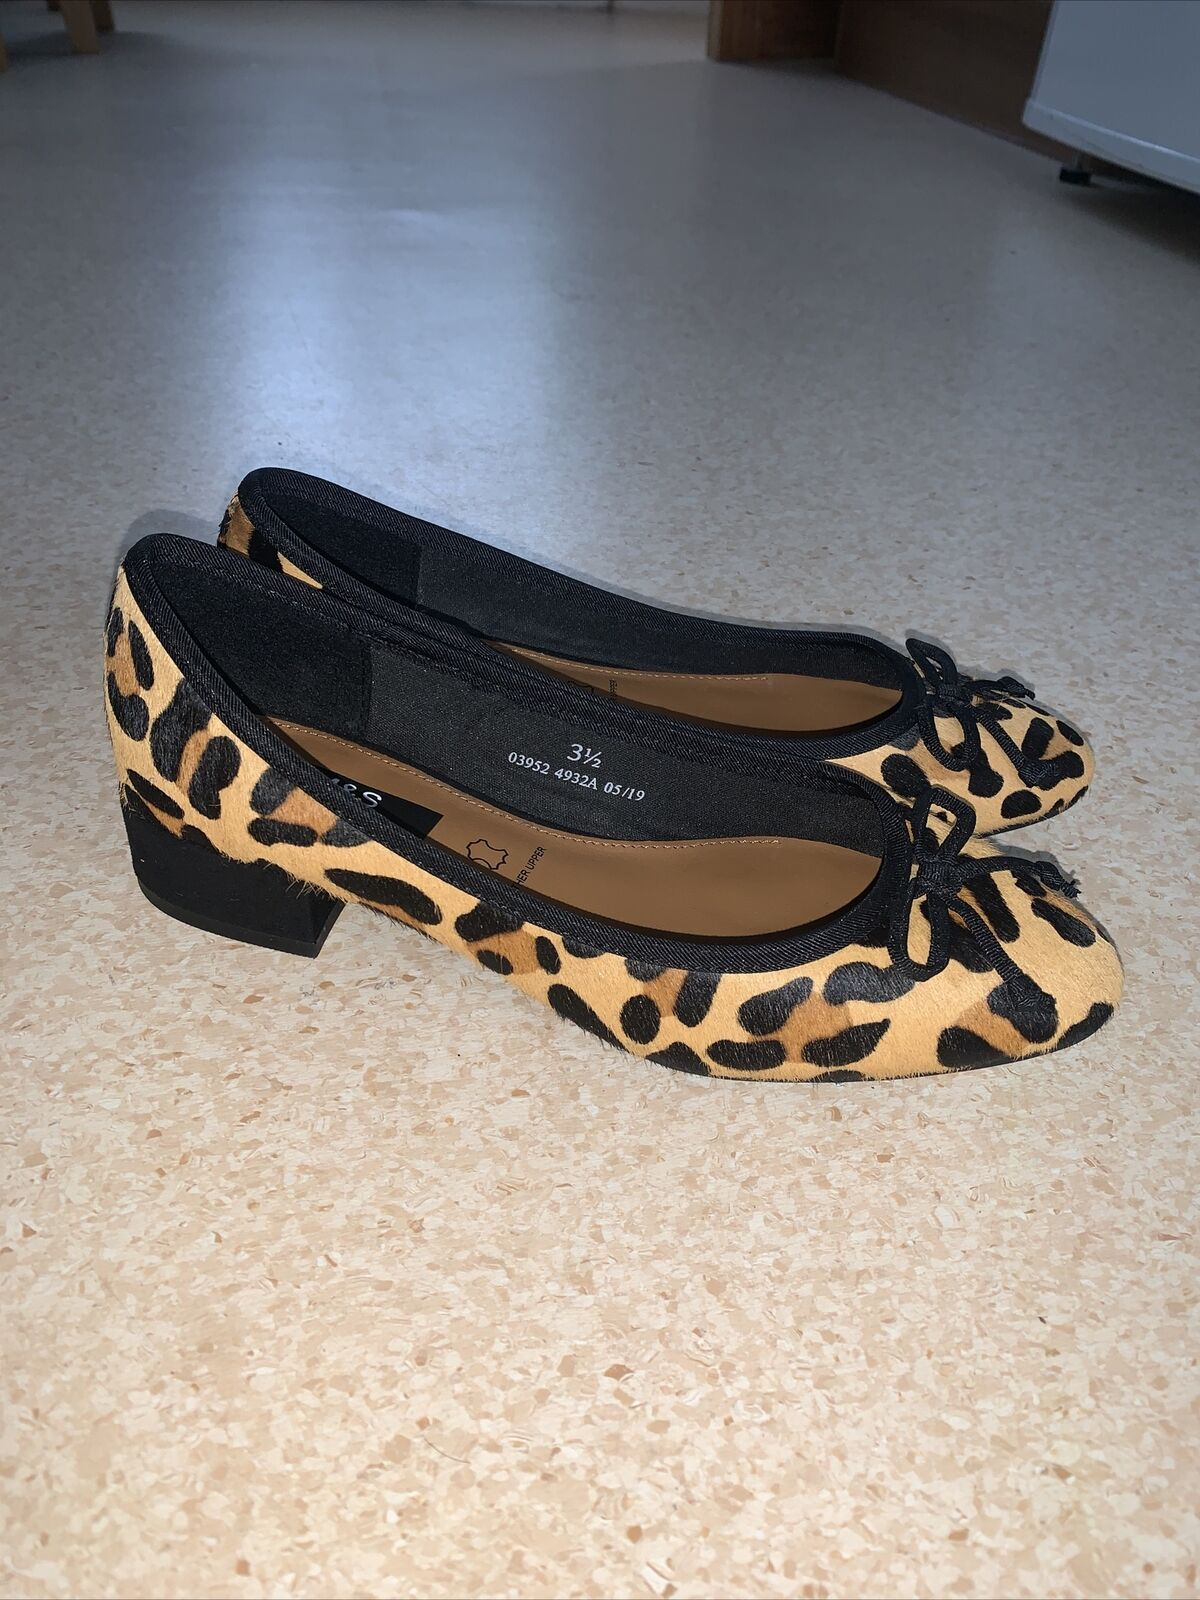 Womens New Leopard Print M&S Round Toe Bow Pumps With Heel - UK 3.5